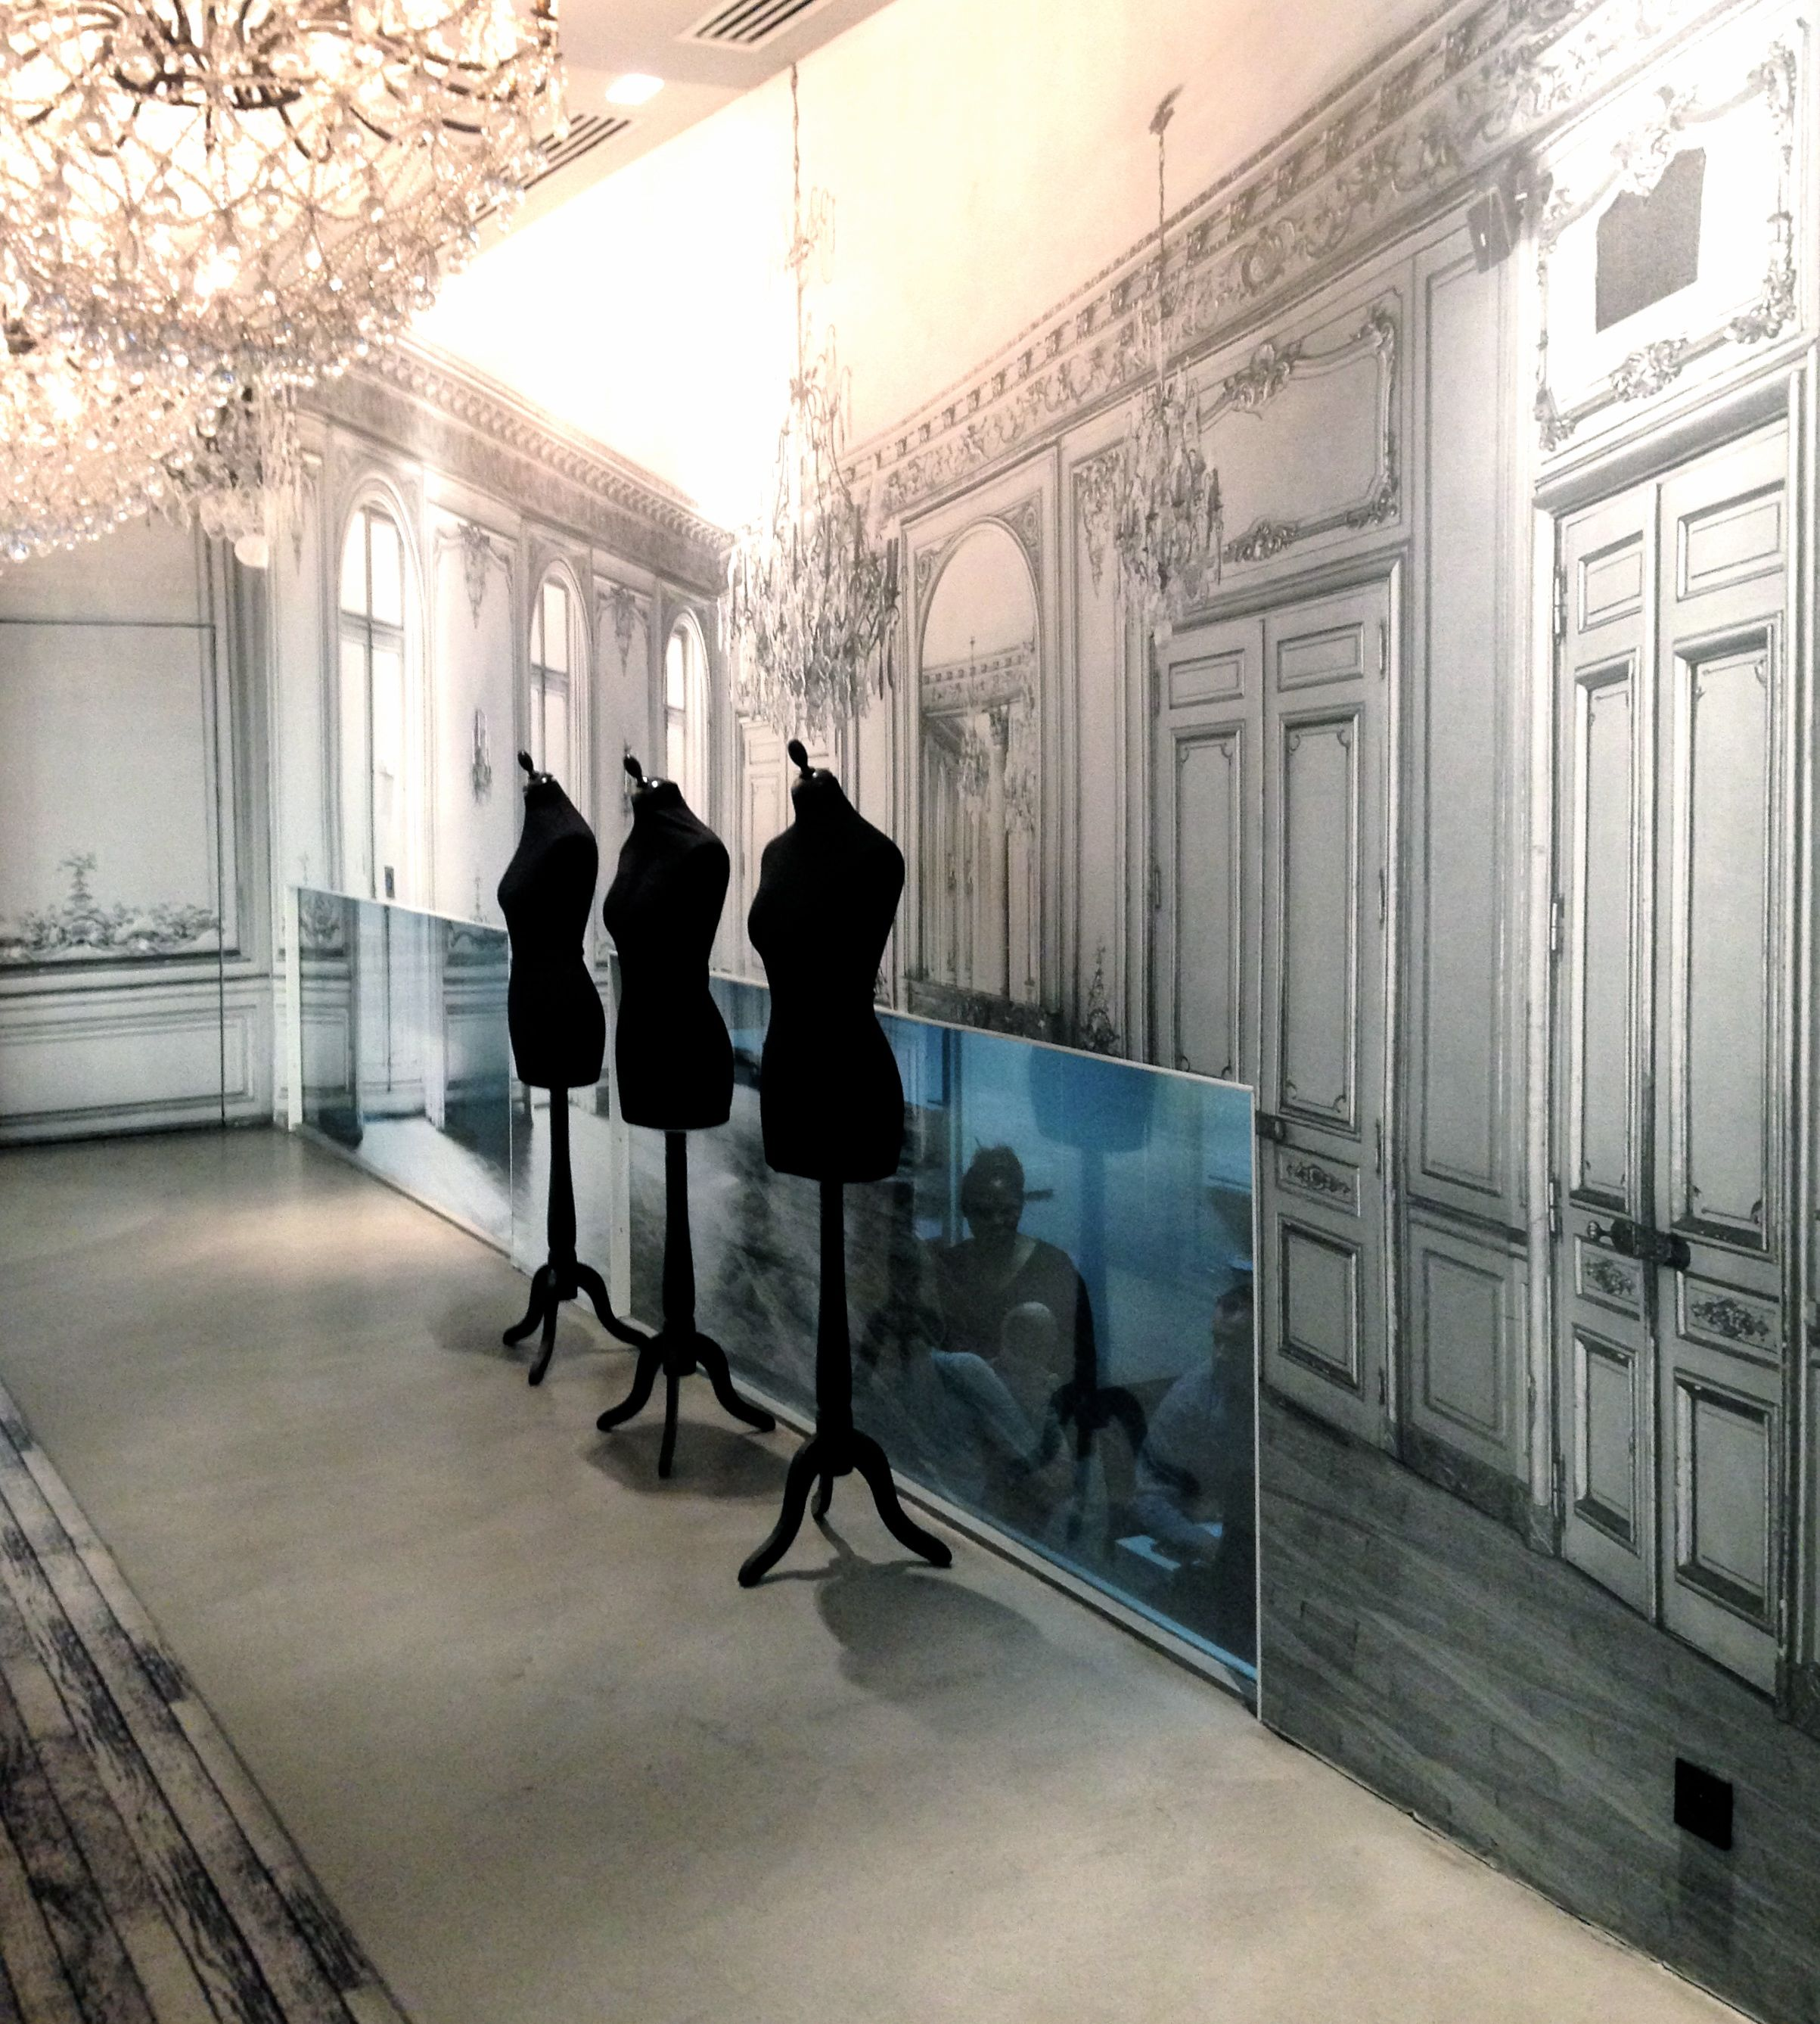 La maison champs elysees margiela designed hotel in paris - Maison champs elysees hotel paris ...